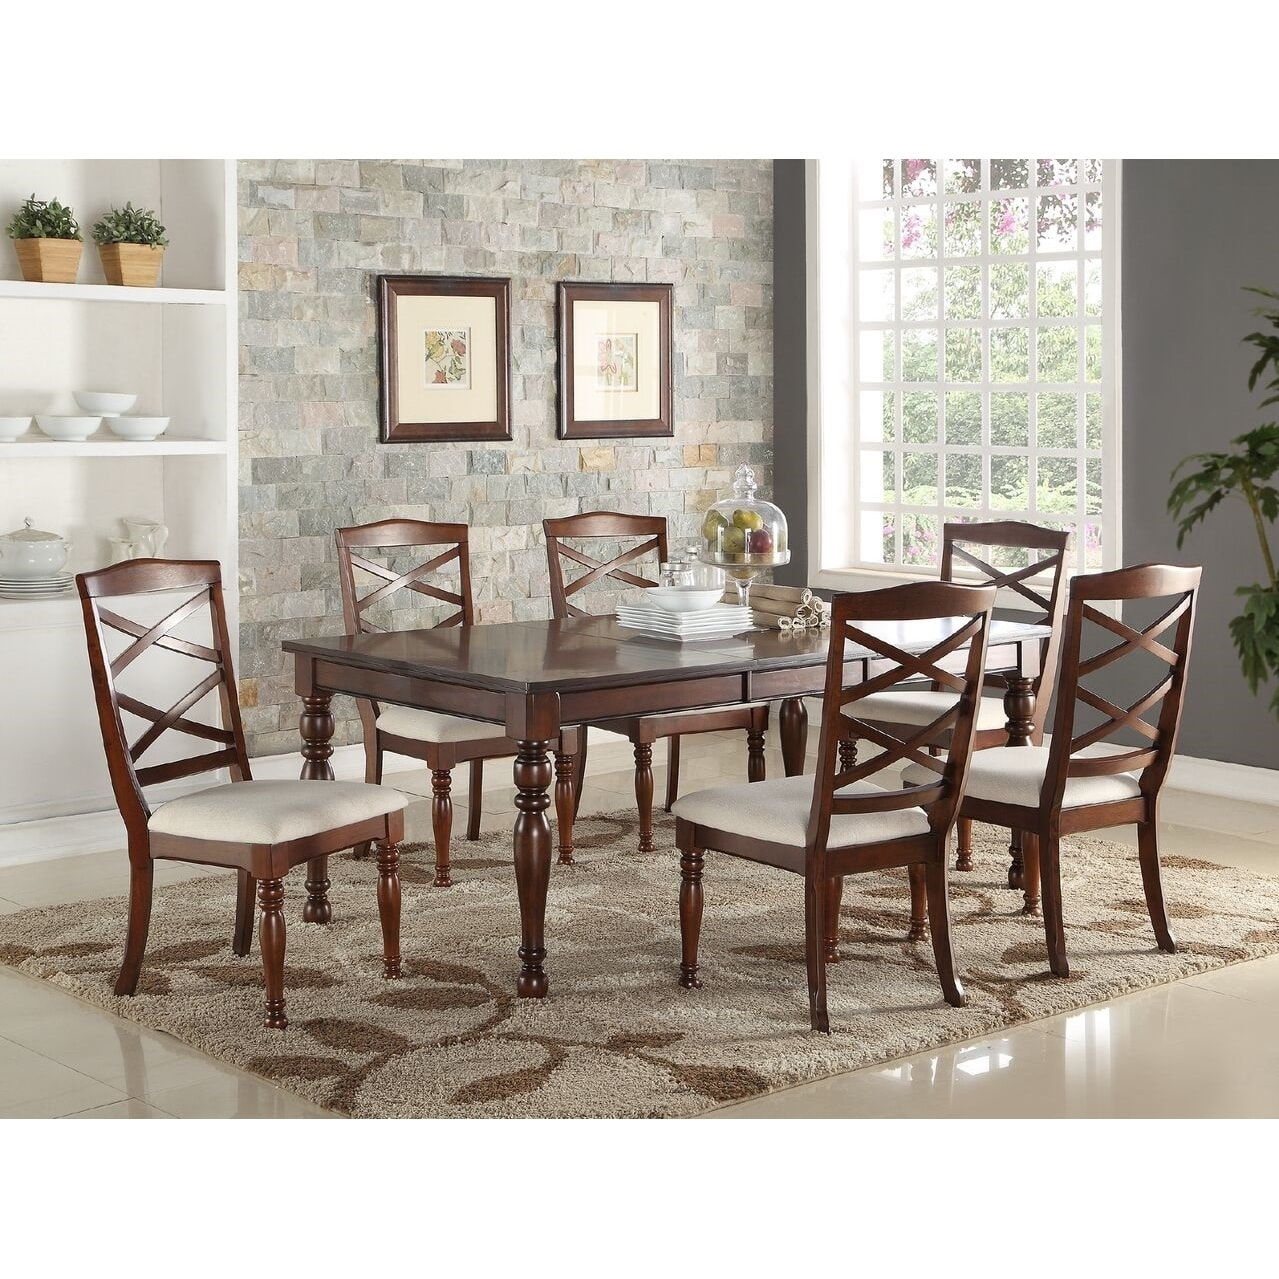 Poundex Tartar 7 Piece Traditional Dining Set Walmart